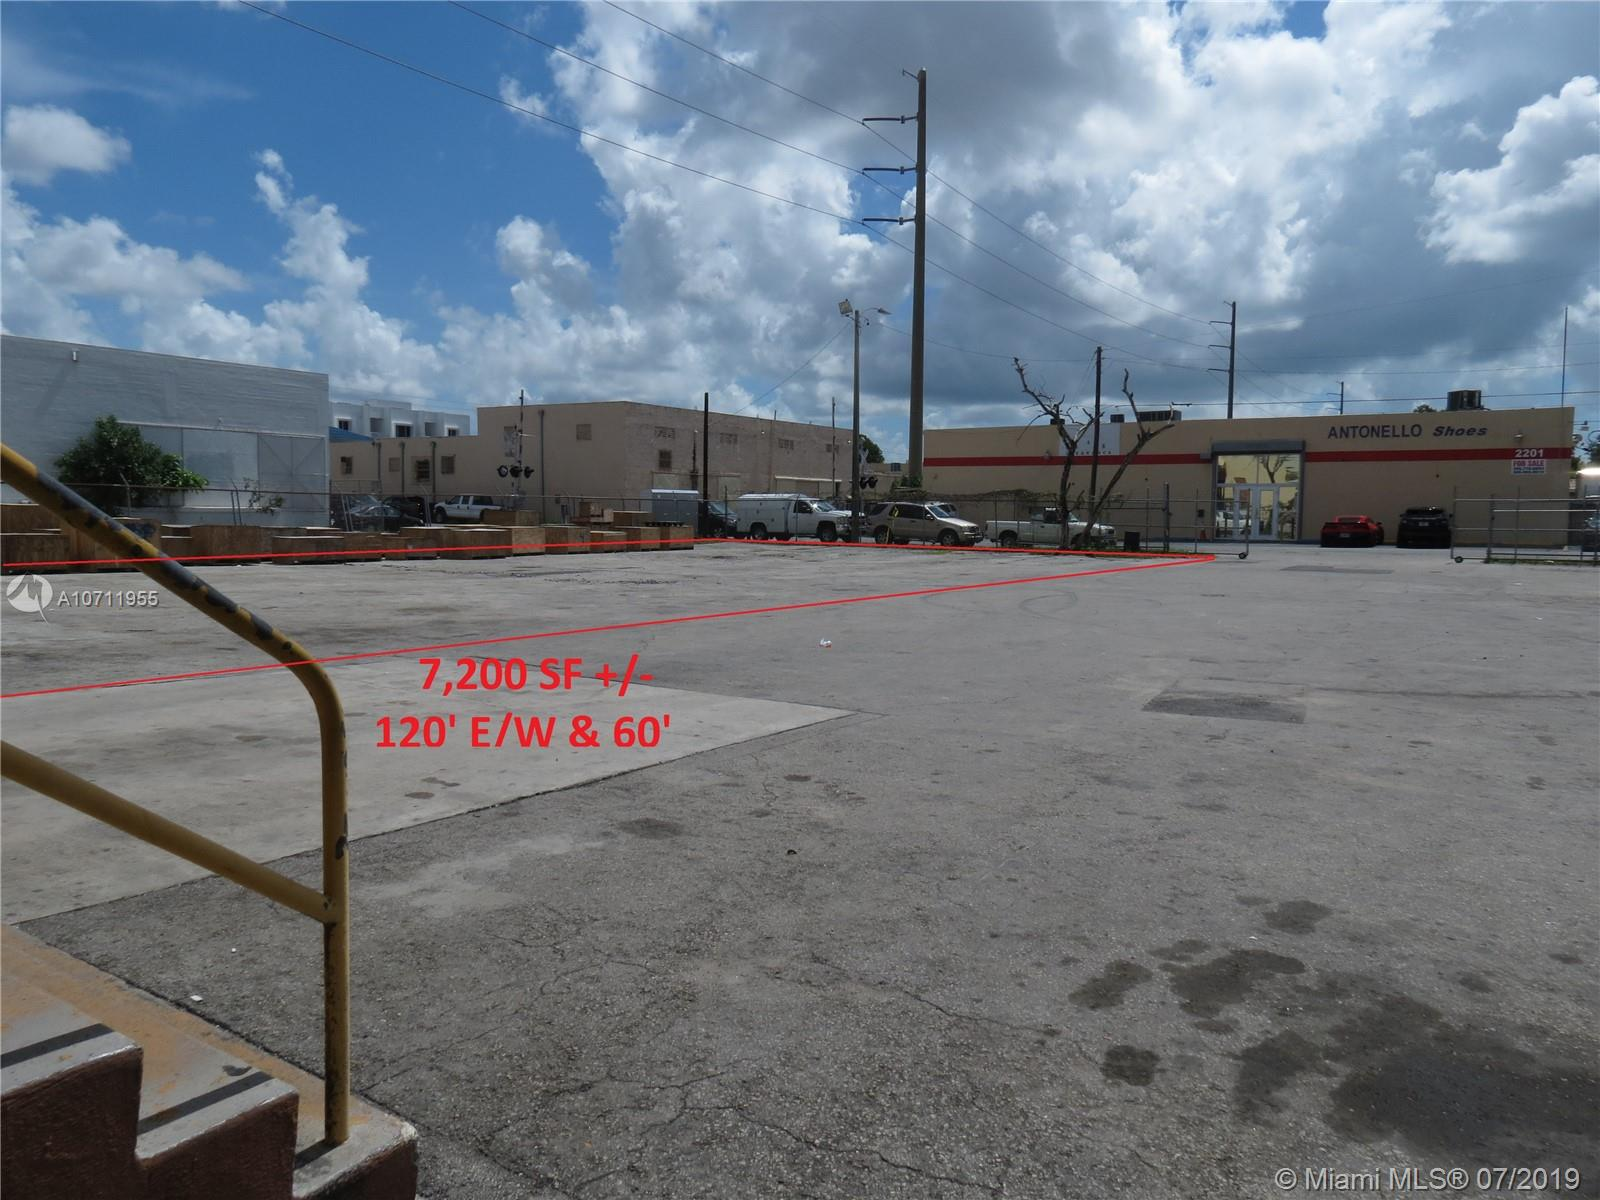 2200 NW 24th Ave - Miami, Florida